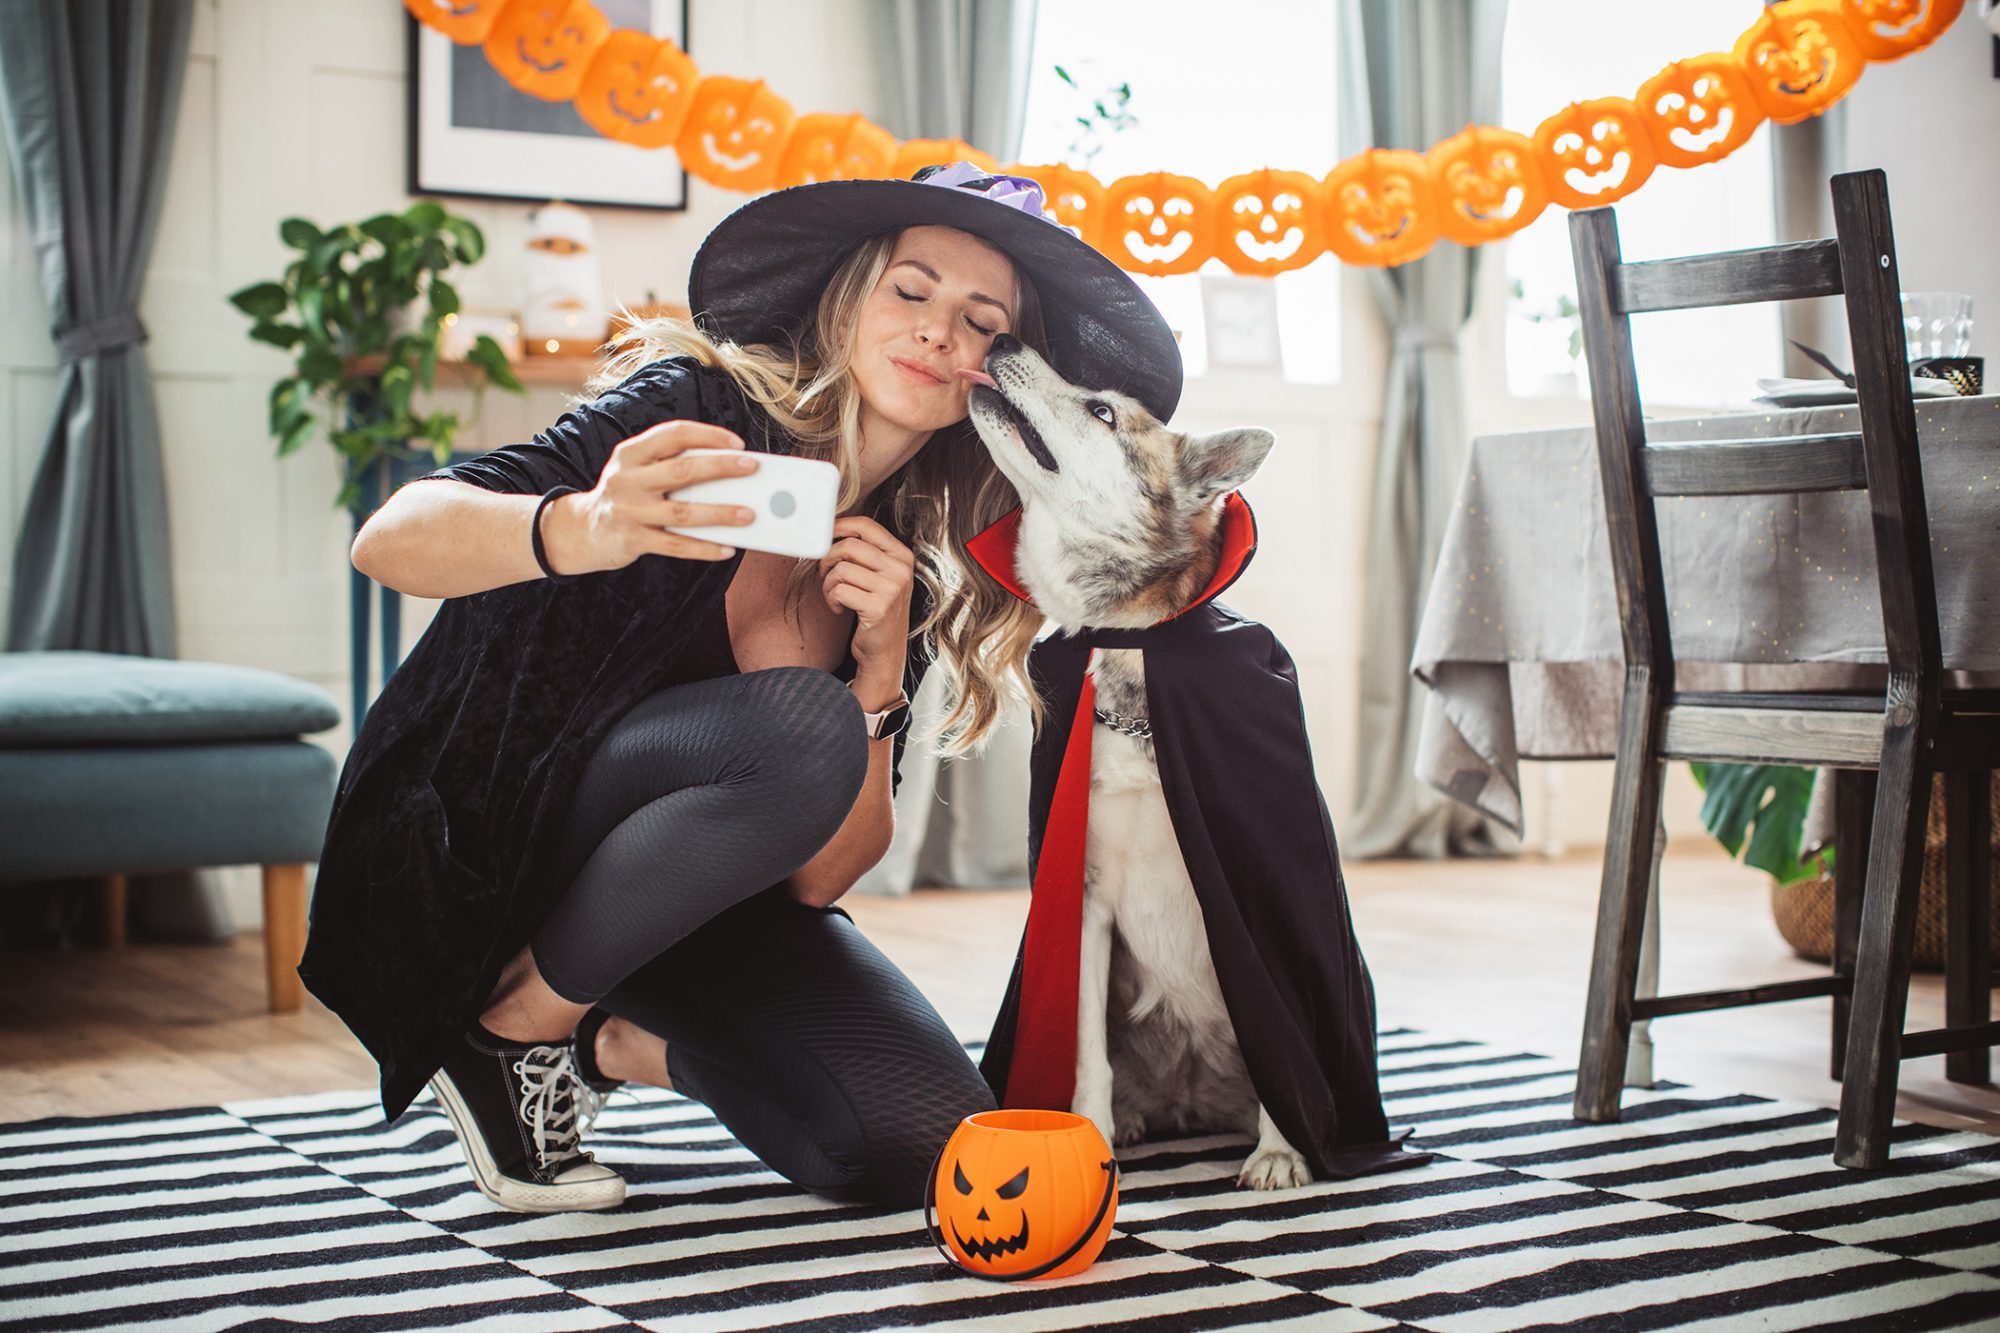 woman taking selfie with dog in costume